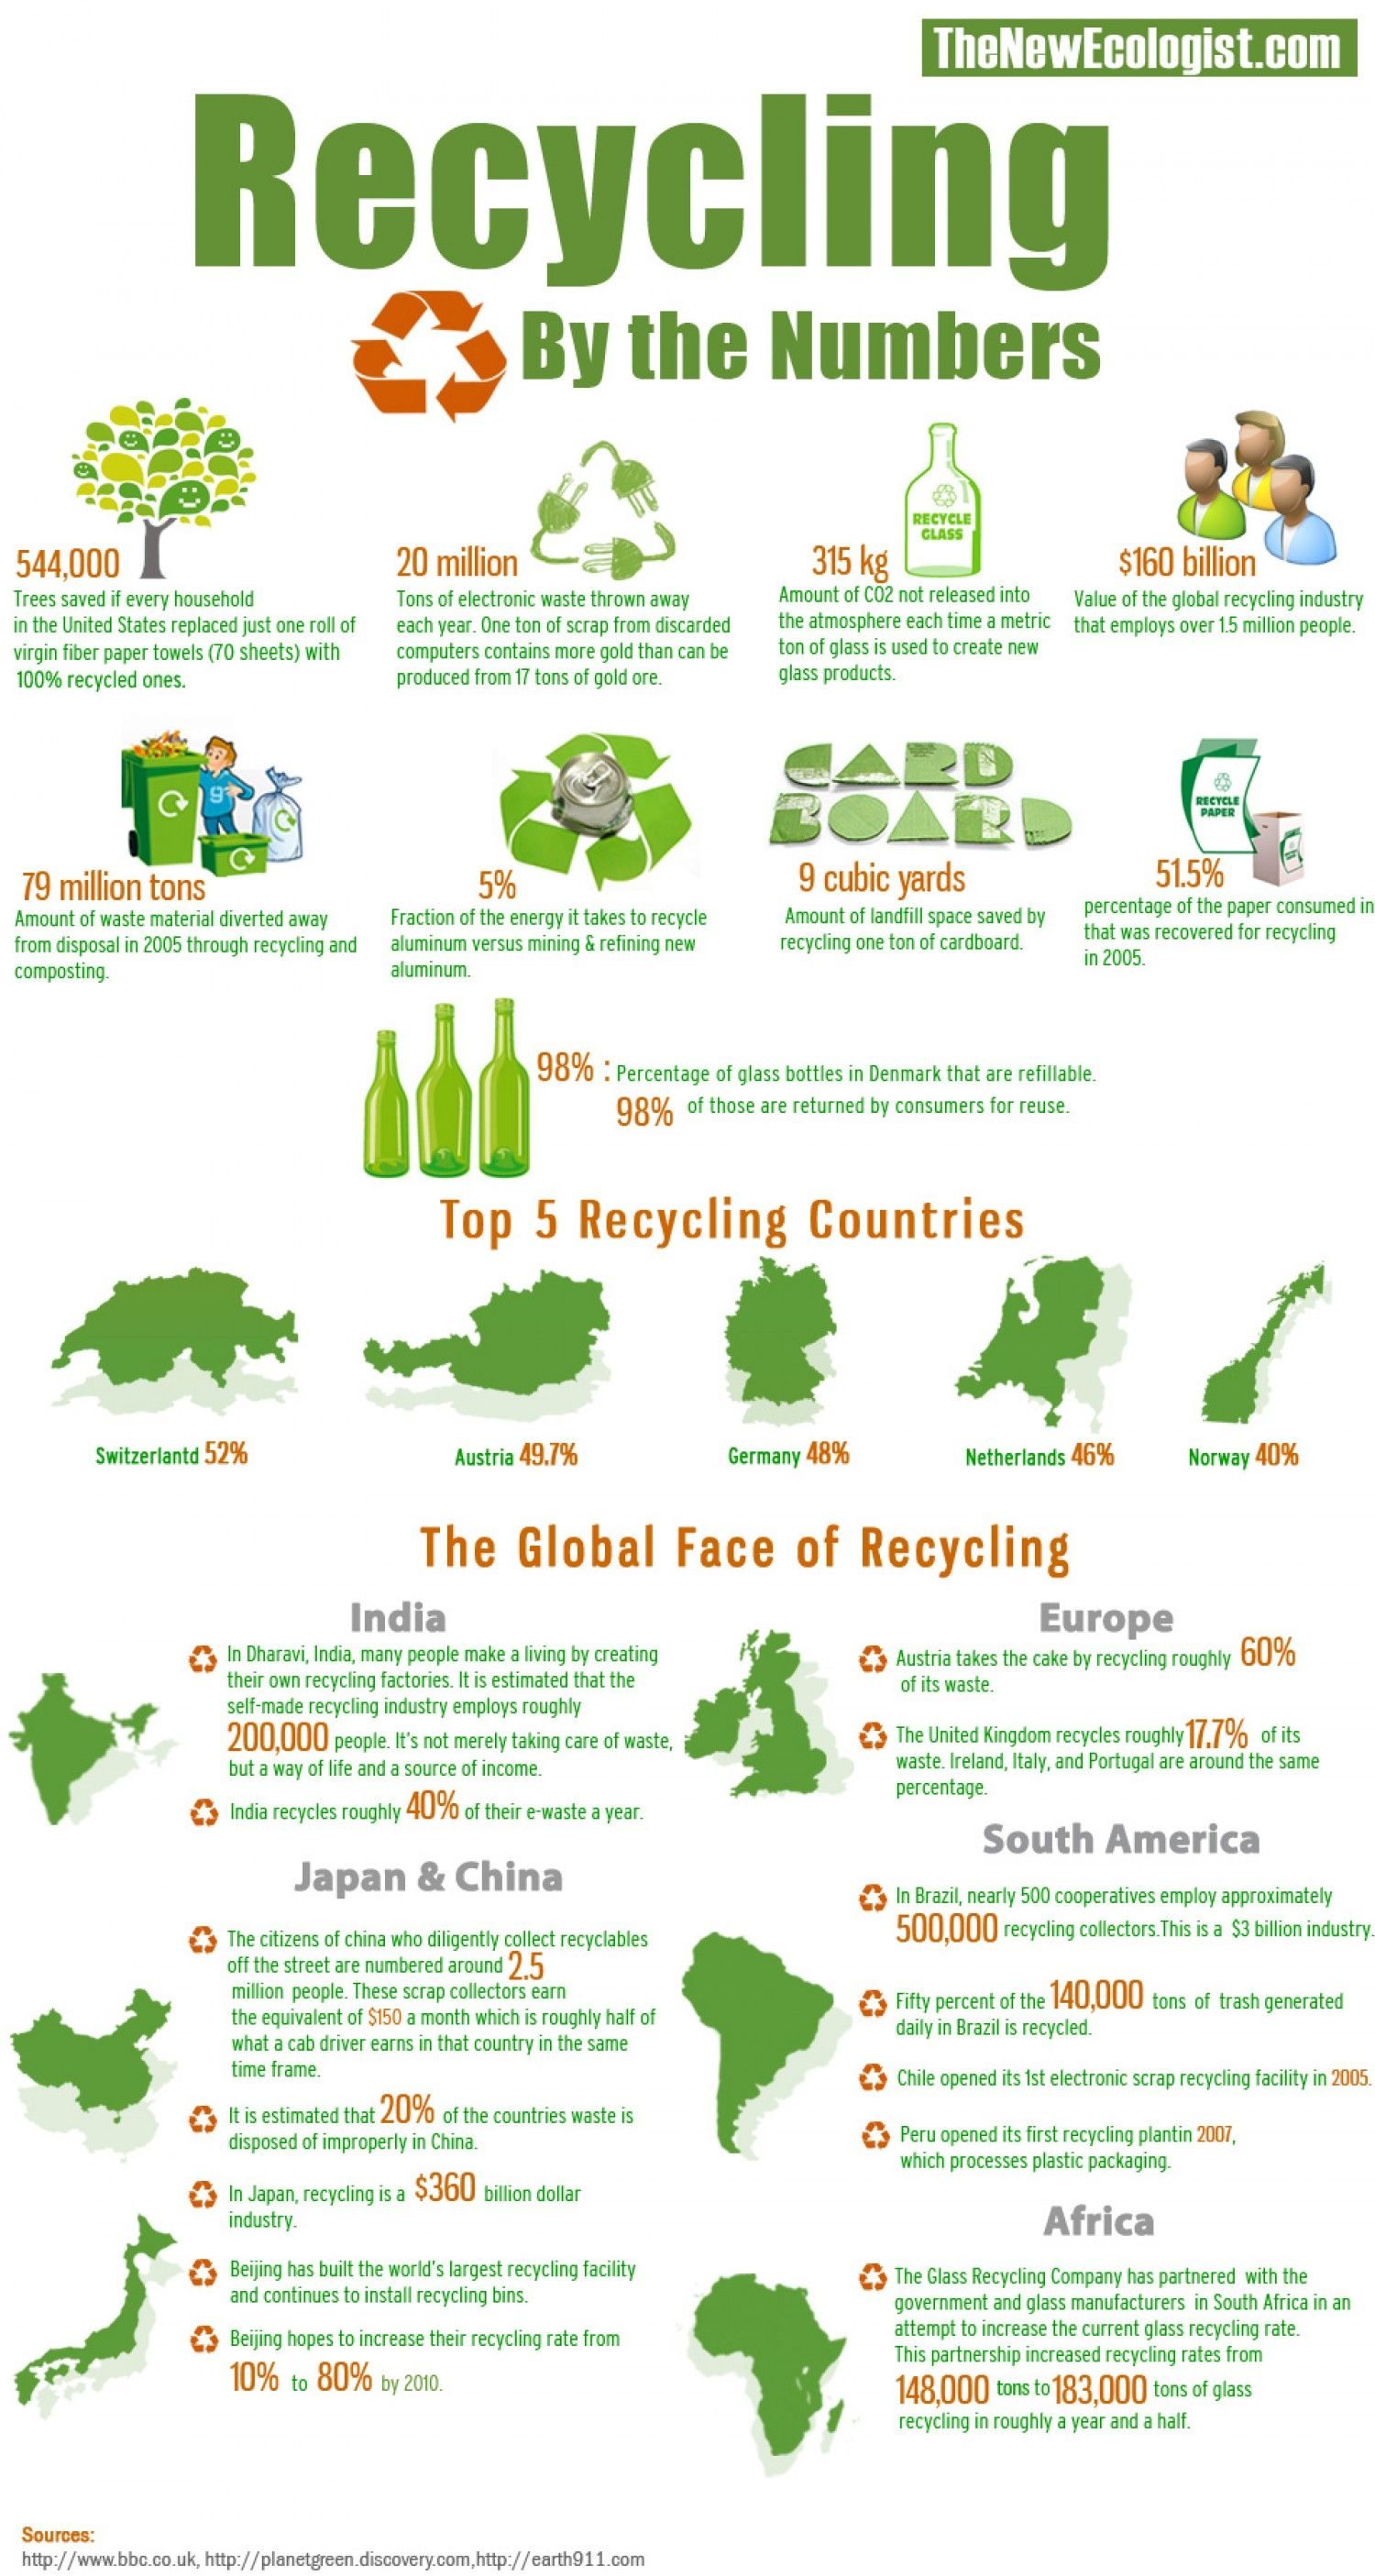 recycling by the numbers infographic go green  recycling by the numbers infographic · reduce reuse